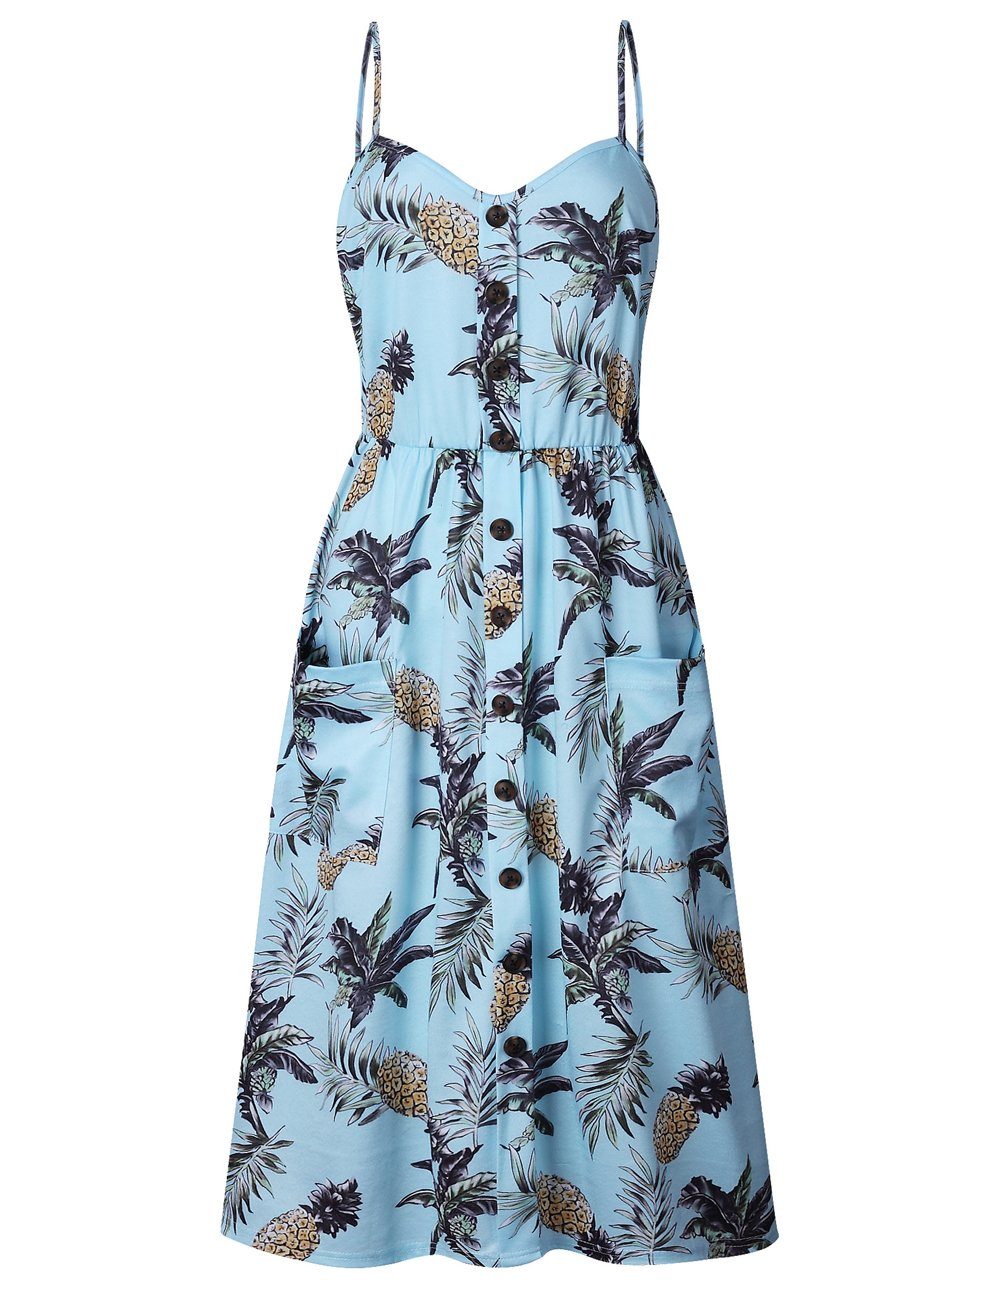 BABAKUD Women's Dresses Summer Light Blue Floral Spaghetti Strap Button Down Midi Dress with Pocket, Size XL